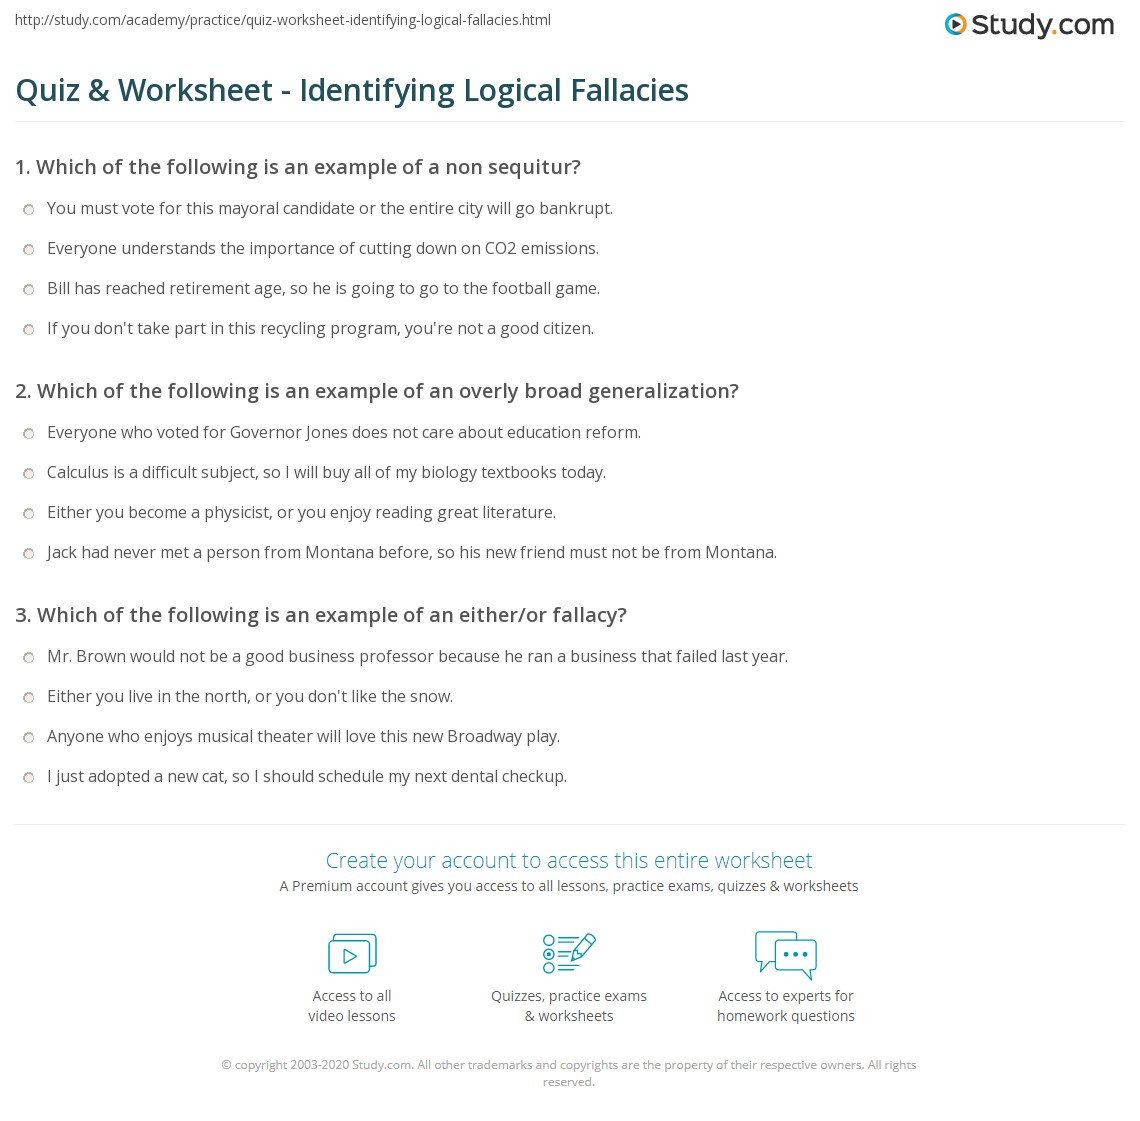 Quiz & Worksheet Identifying Logical Fallacies